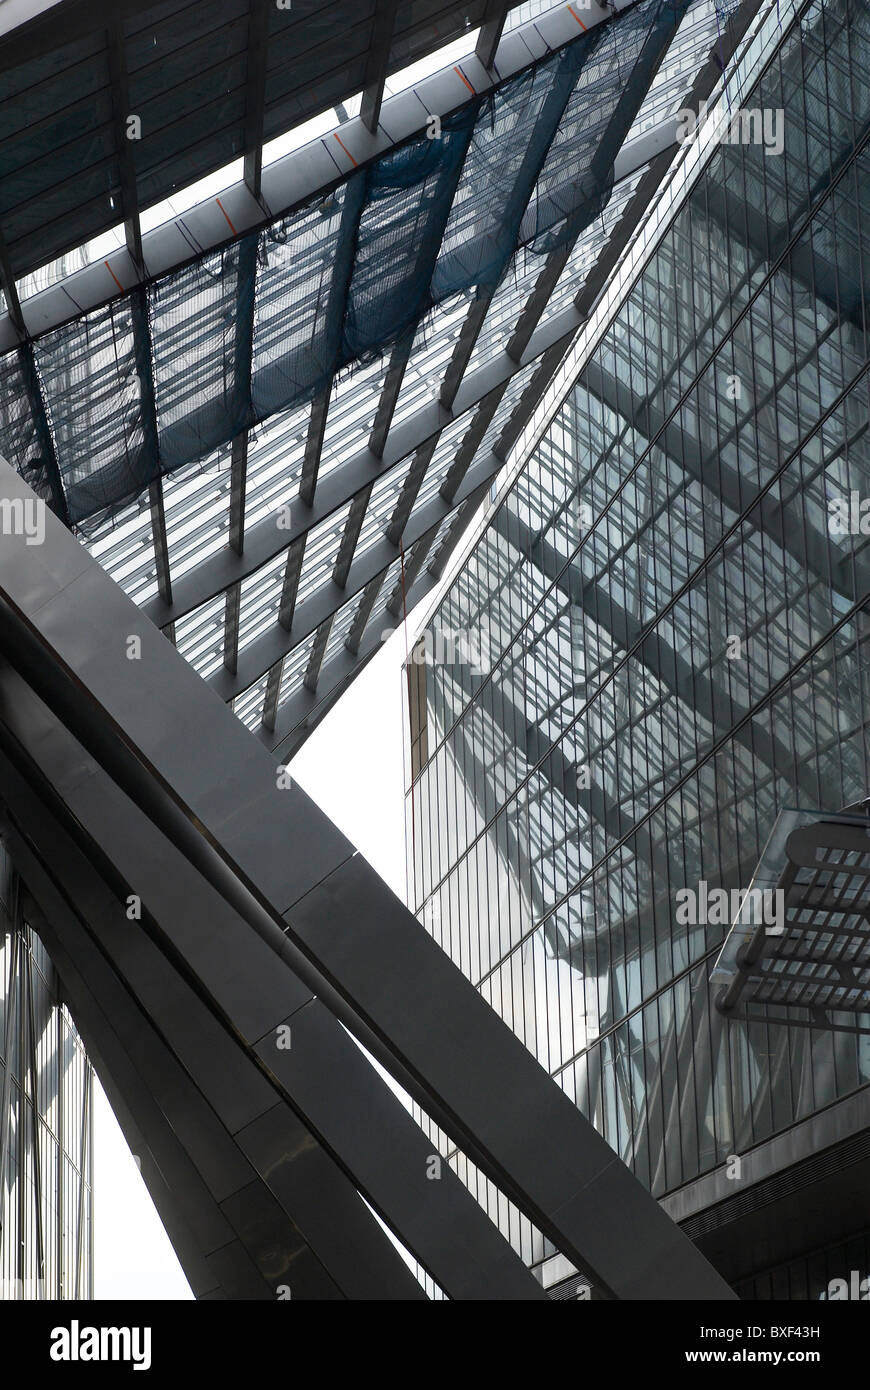 201 Bishopsgate and The Broadgate Tower designed by Skidmore Owings & Merrill Broadgate Central London UK - Stock Image